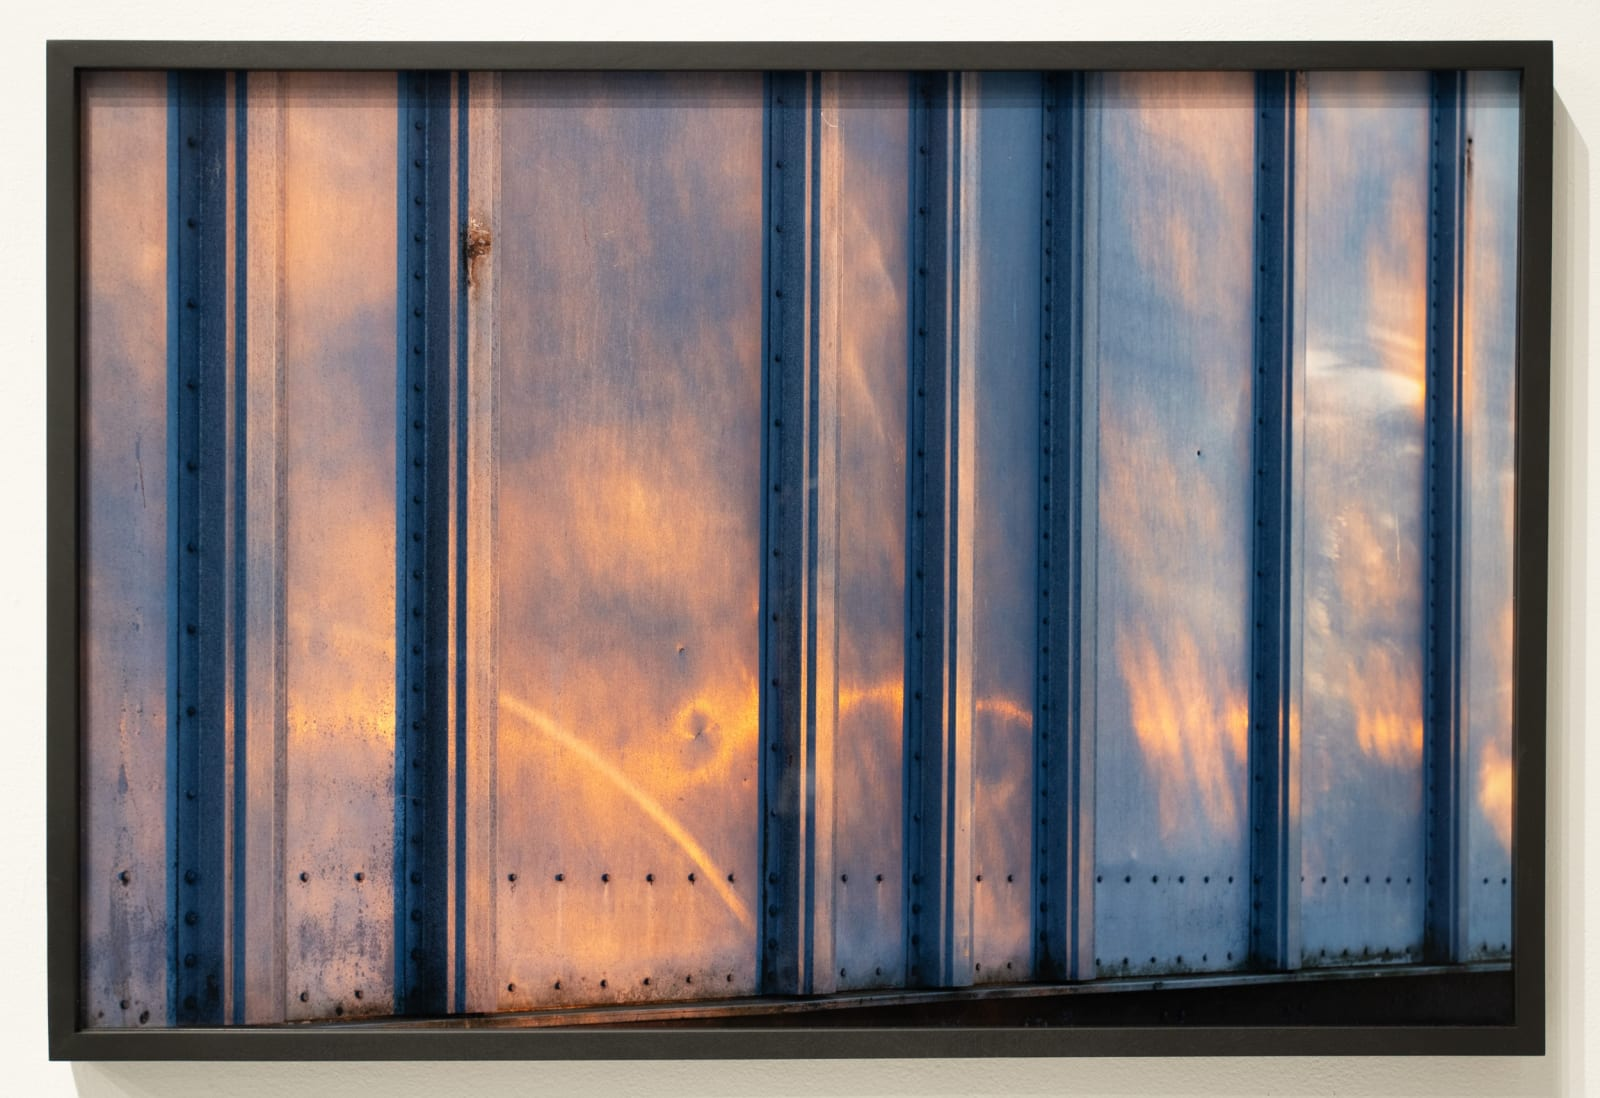 Mickey Aloisio Truck Surface #1, 2020 Archival pigment print (framed) 26 x 39 inches edition of 7 + 2 APs